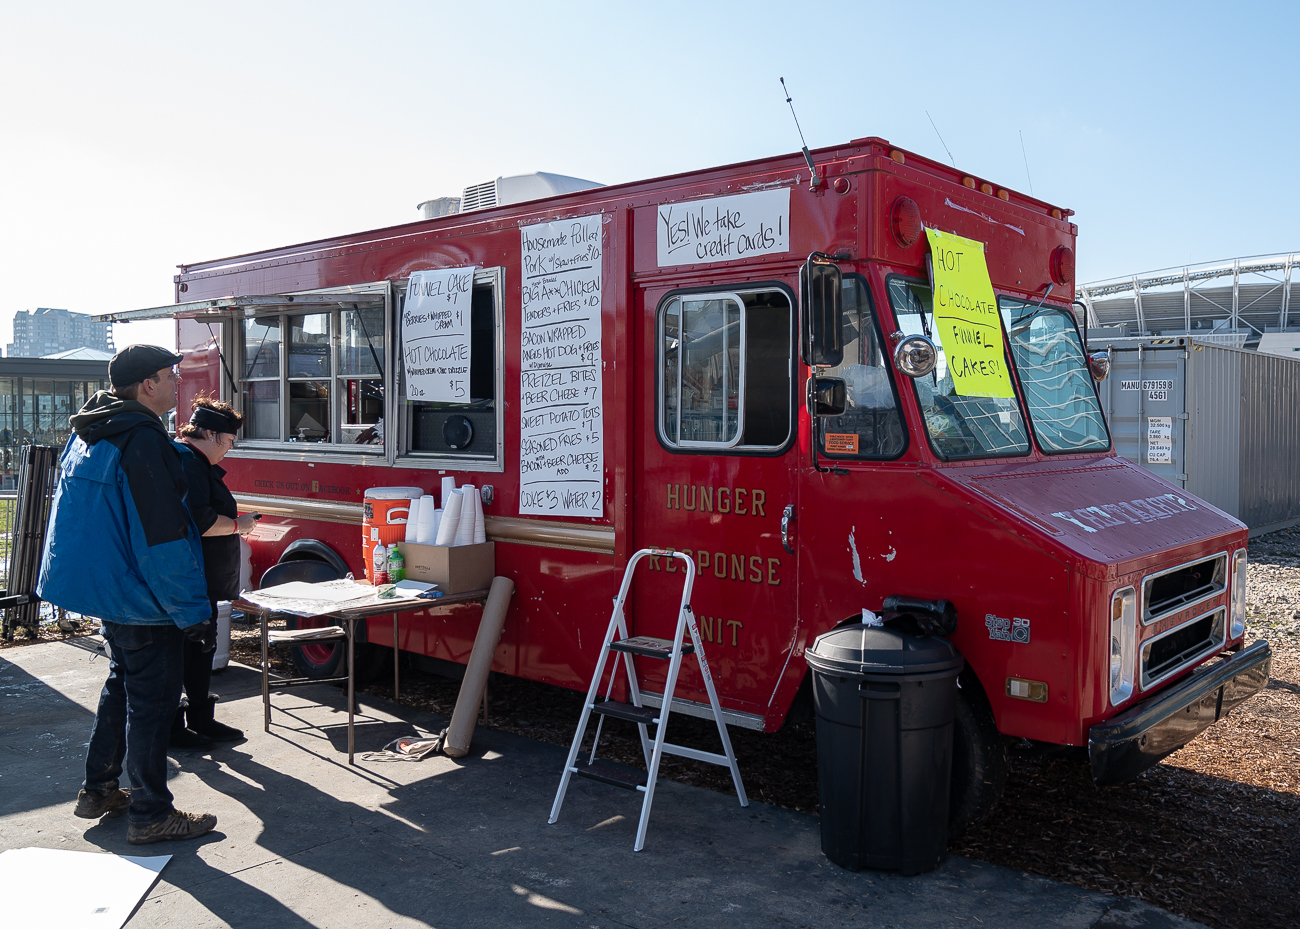 Hungry? Grab a bite to eat at a nearby food truck. / Image: Phil Armstrong, Cincinnati Refined // Published: 1.6.20